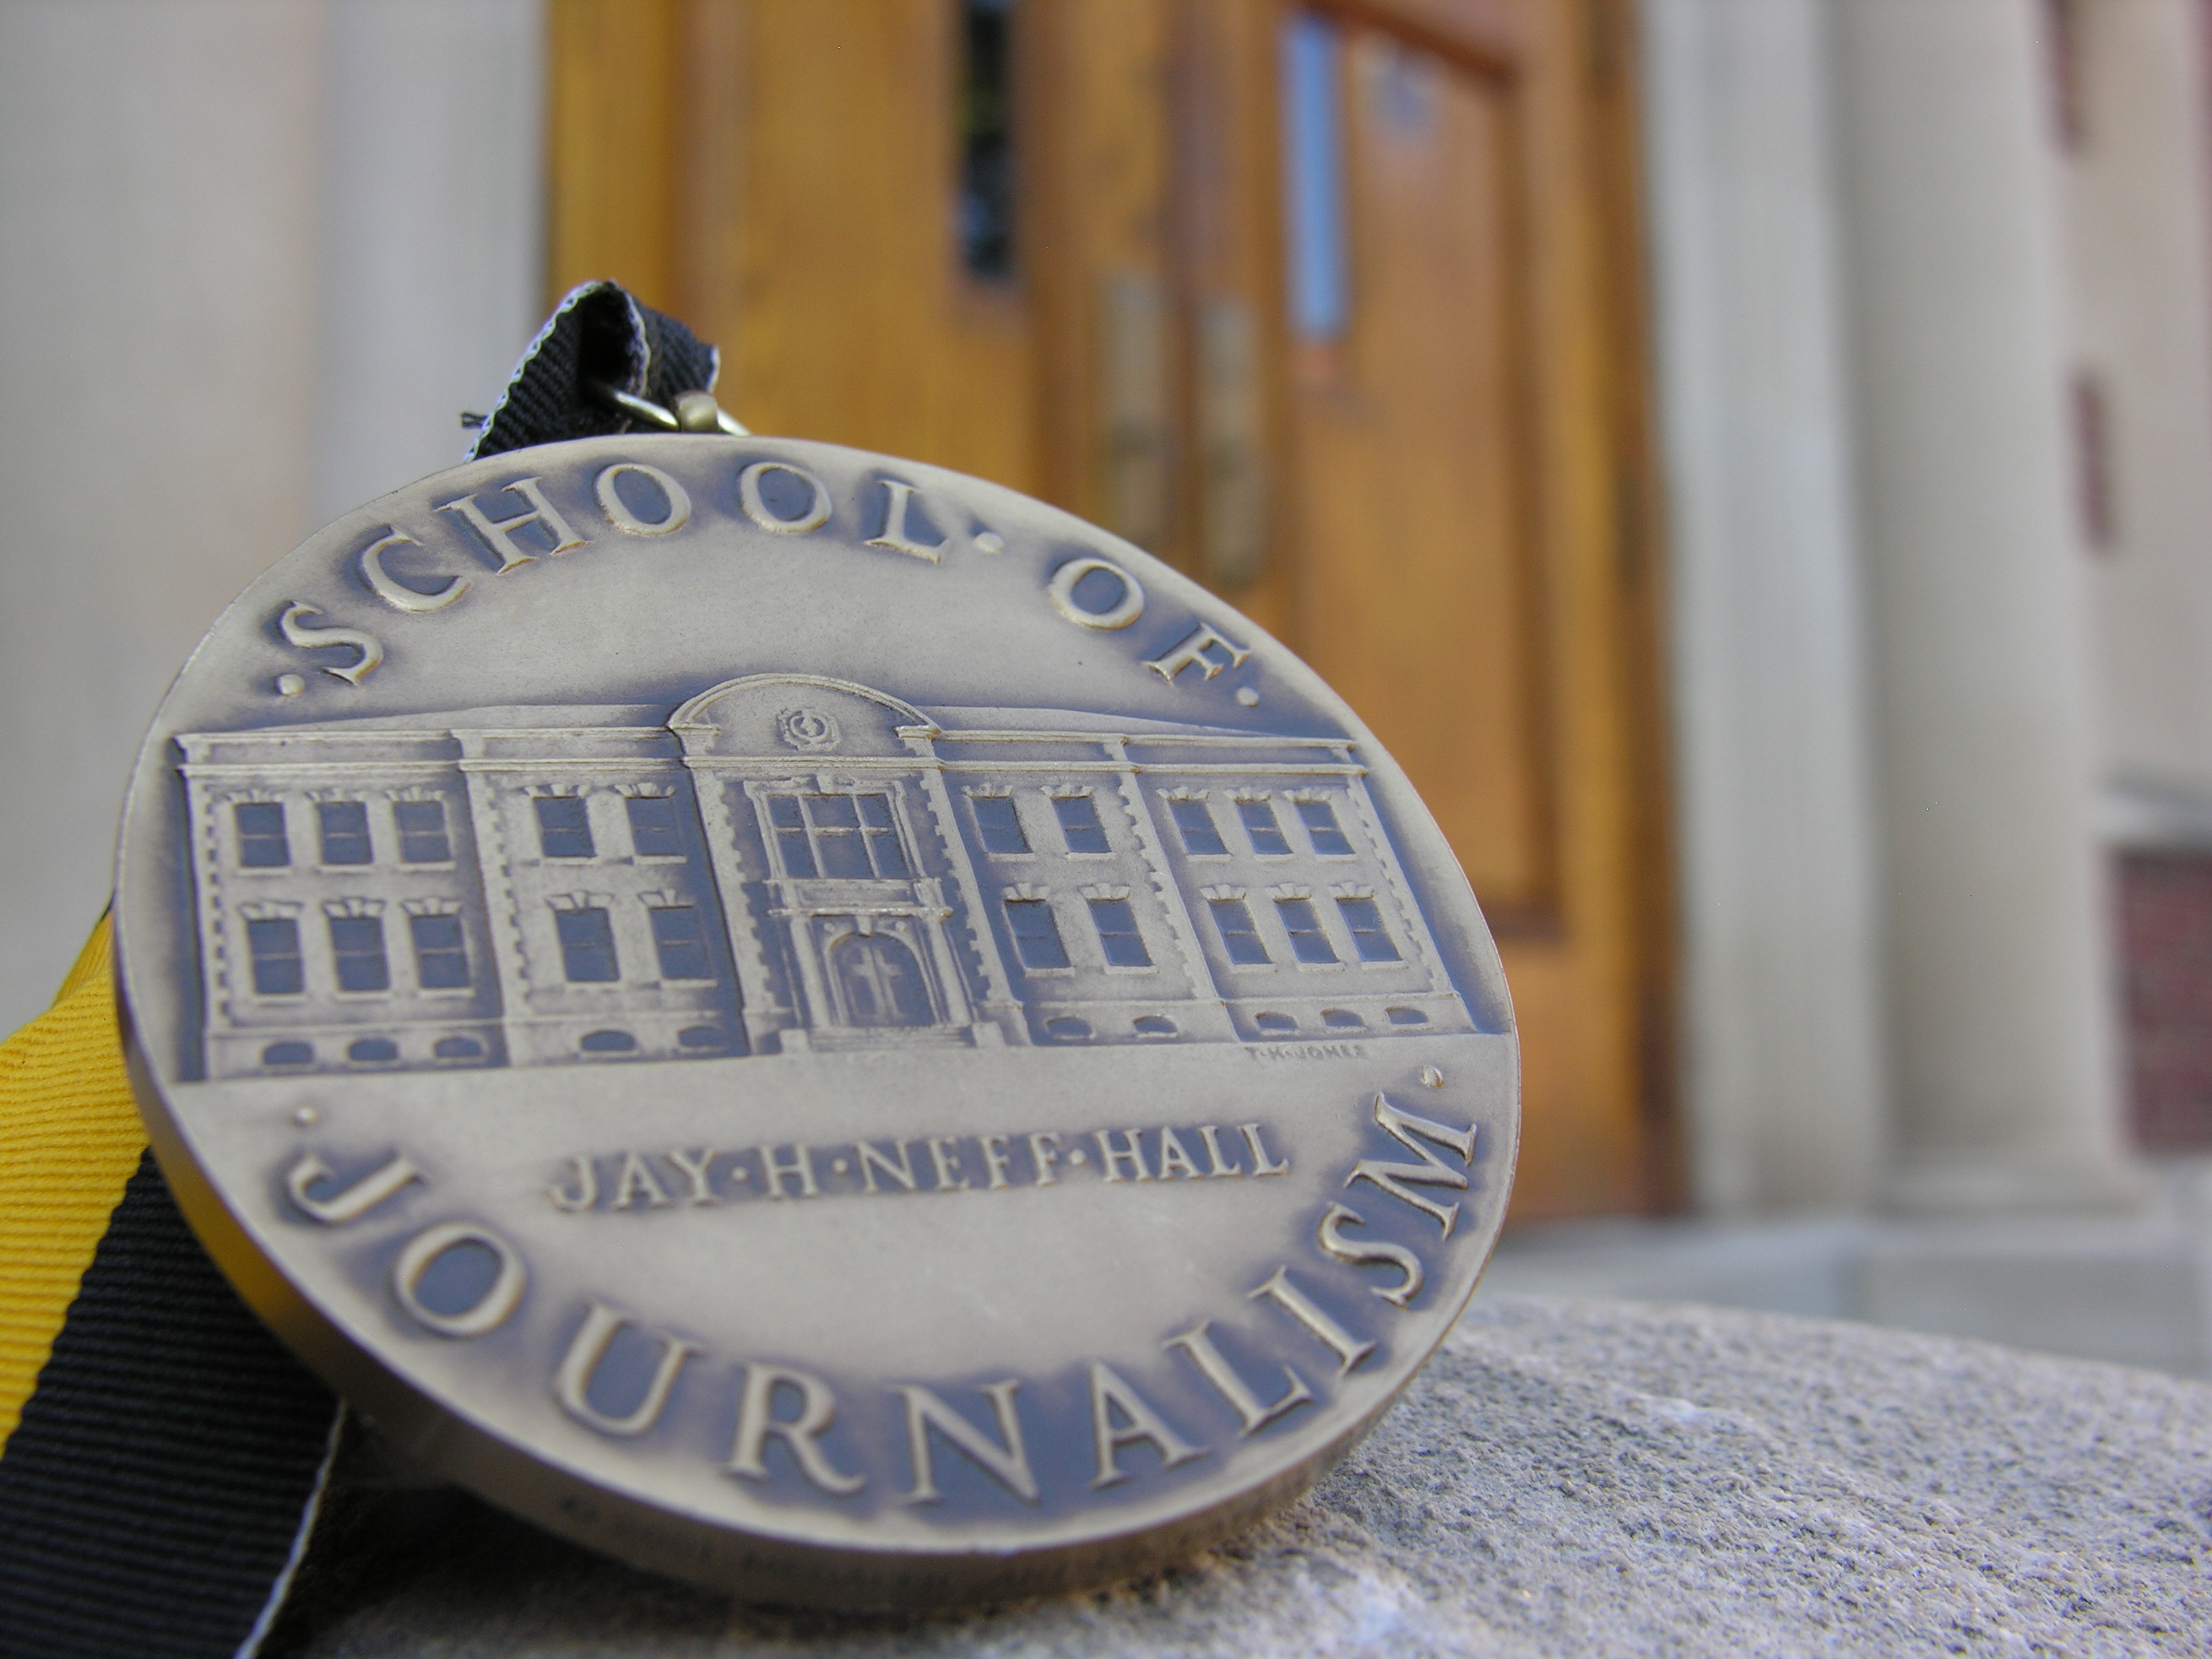 The Missouri Honor Medal